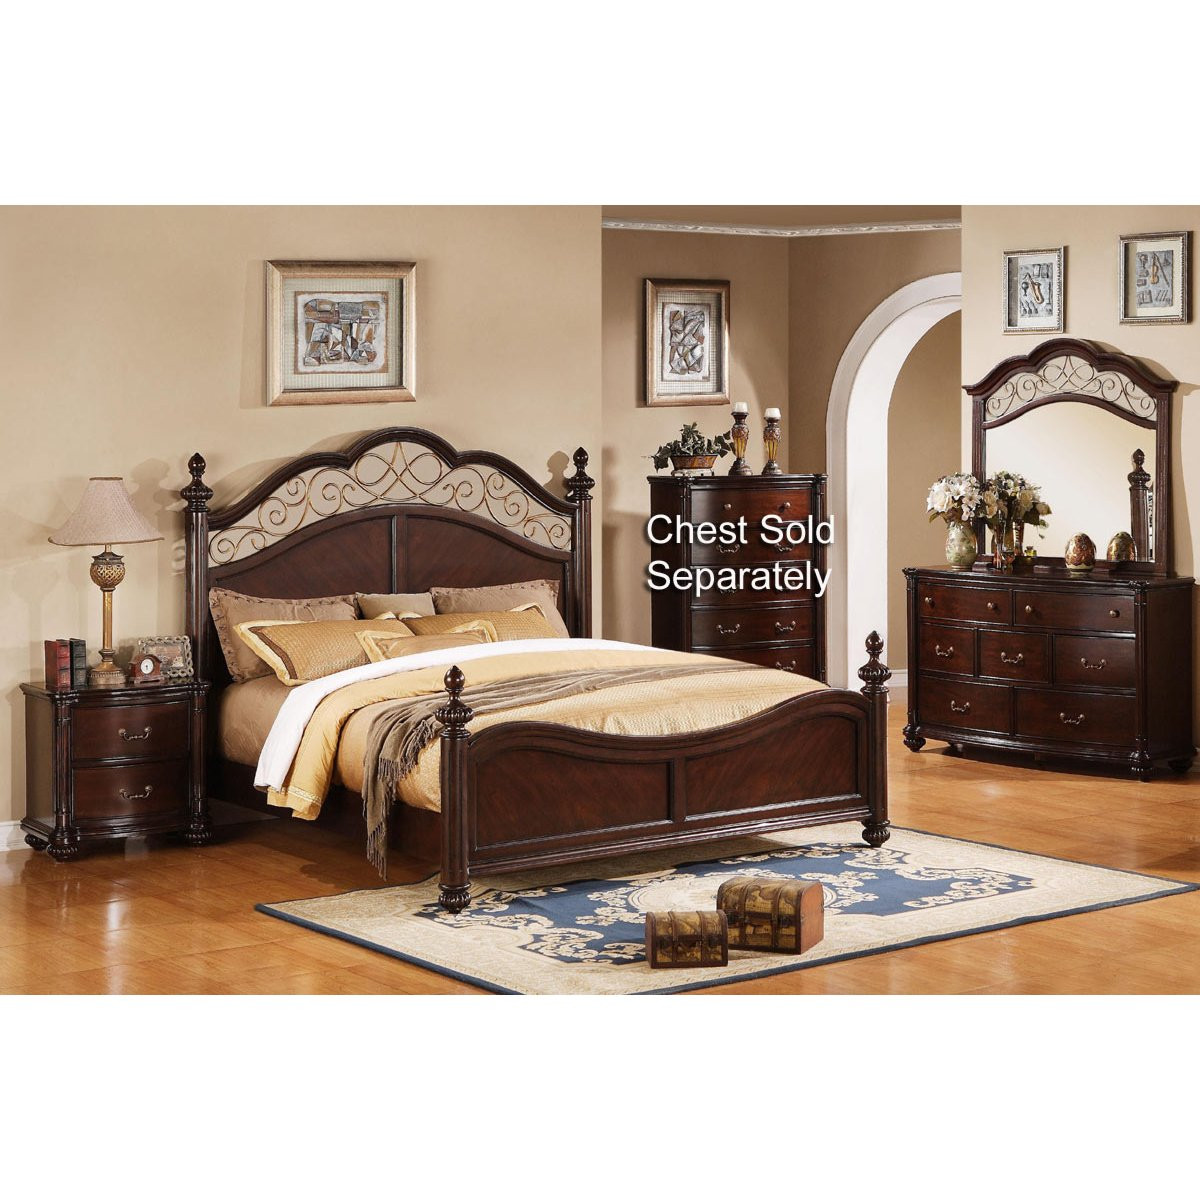 Best ideas about Queen Bedroom Sets . Save or Pin Derbyshire International Furniture 6 Piece Queen Bedroom Set Now.